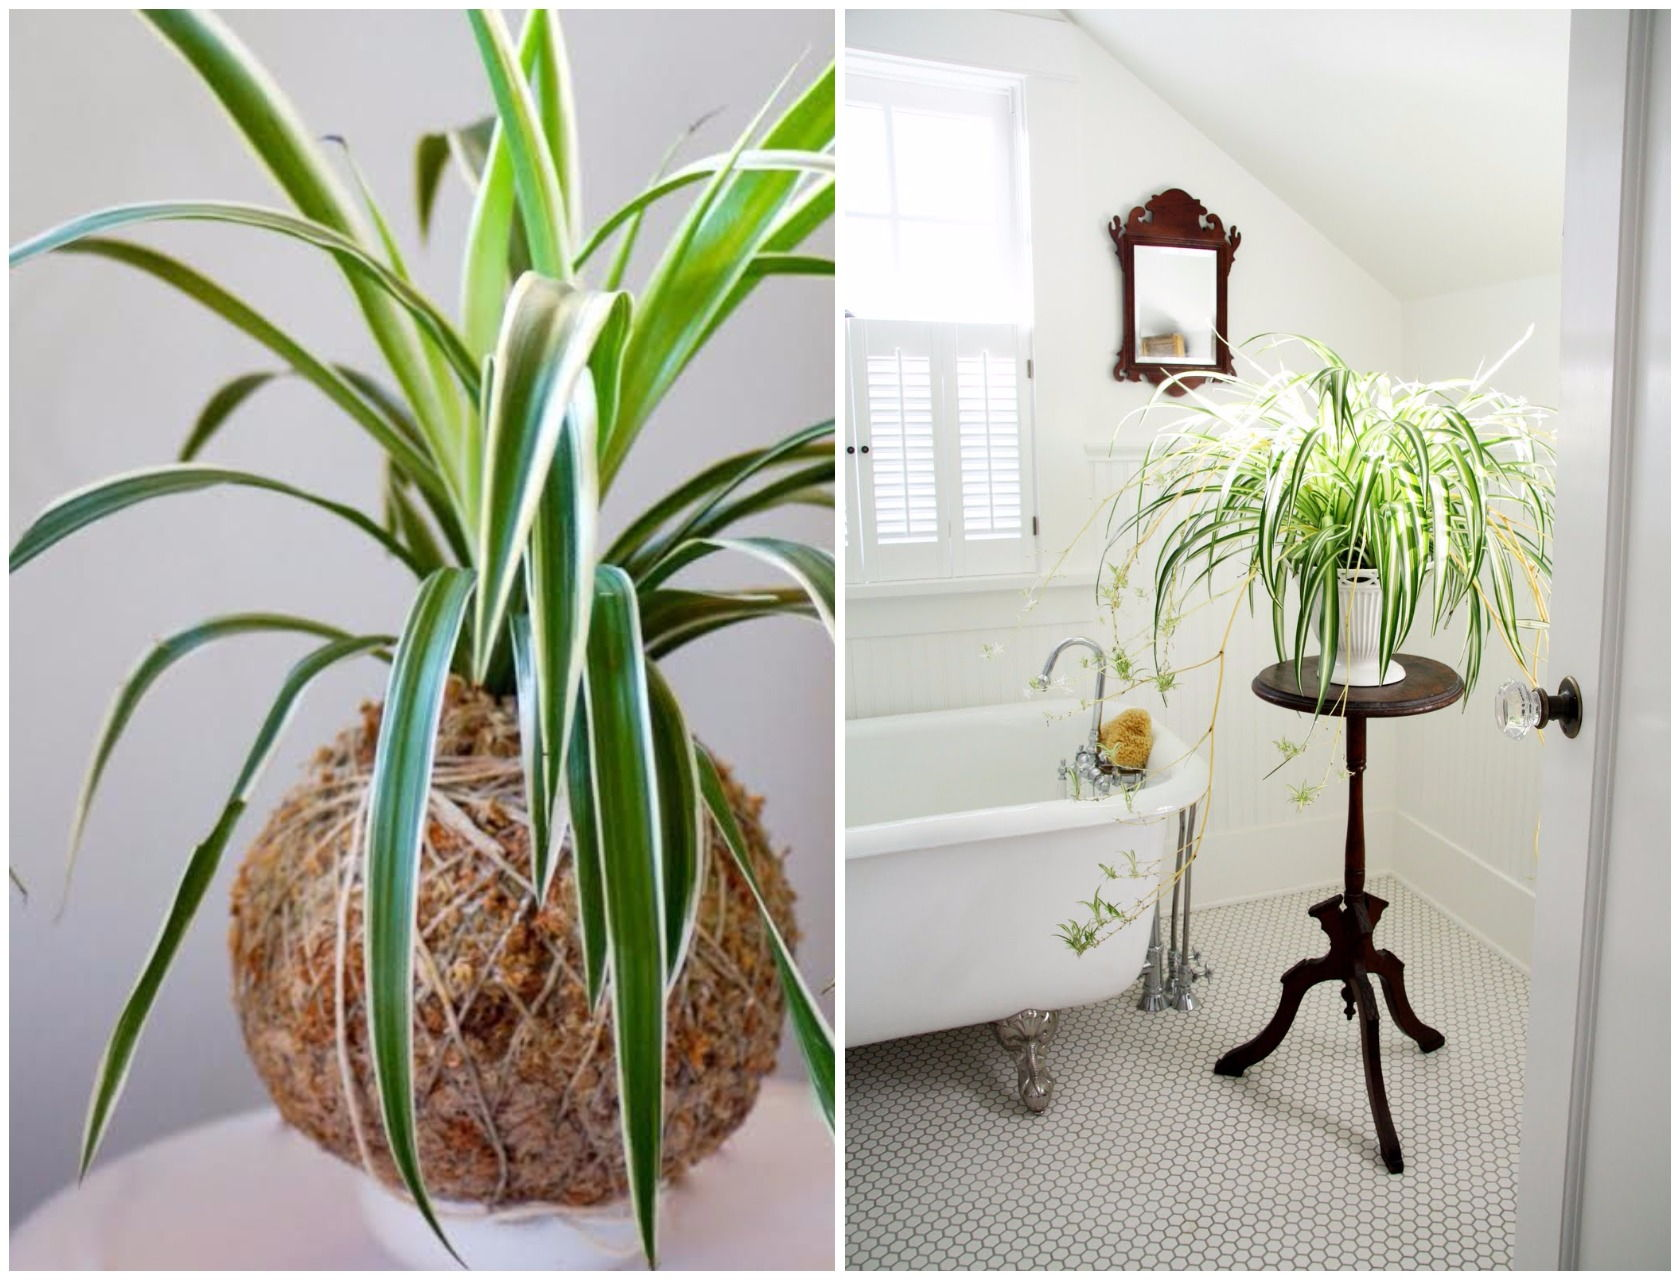 9 Indoor Plants You Can't Kill (So Easily) | Atap.co on indoor house plants that clean air, indoor plant decoration ideas, indoor house plants trees, indoor palm trees, indoor outdoor spider plants,